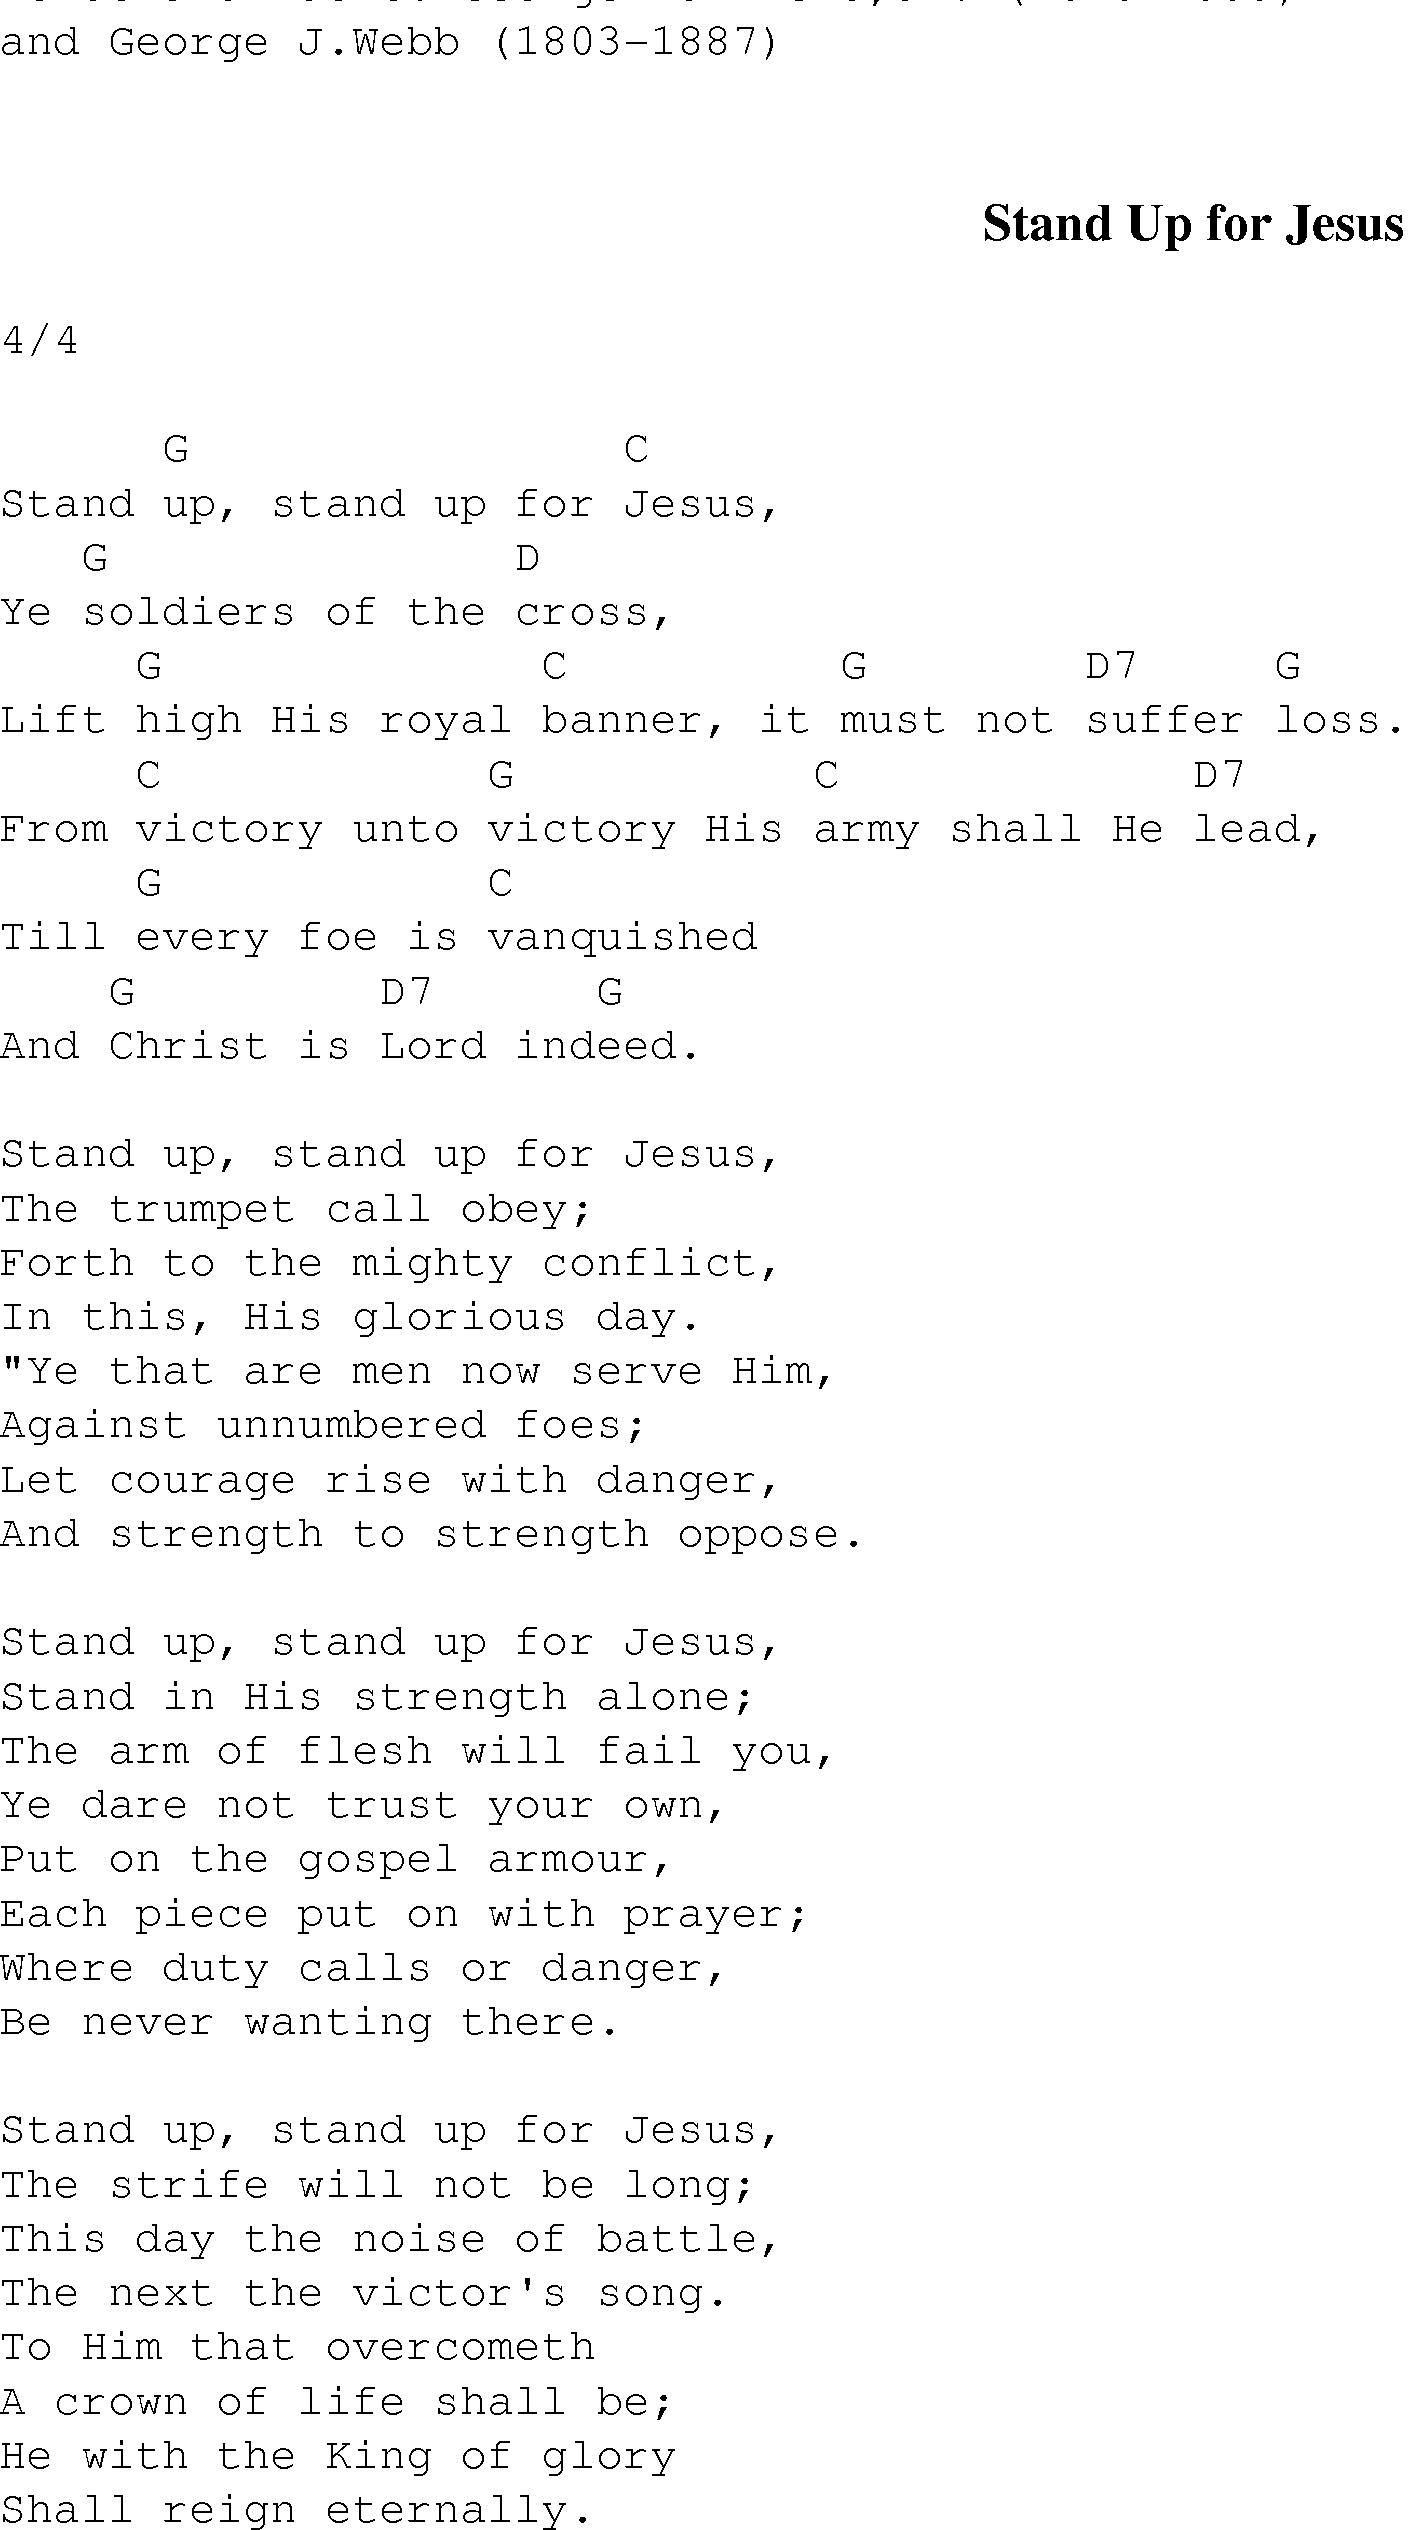 This Is Gospel Piano Chords Stand Up For Jesus Christian Gospel Song Lyrics And Chords